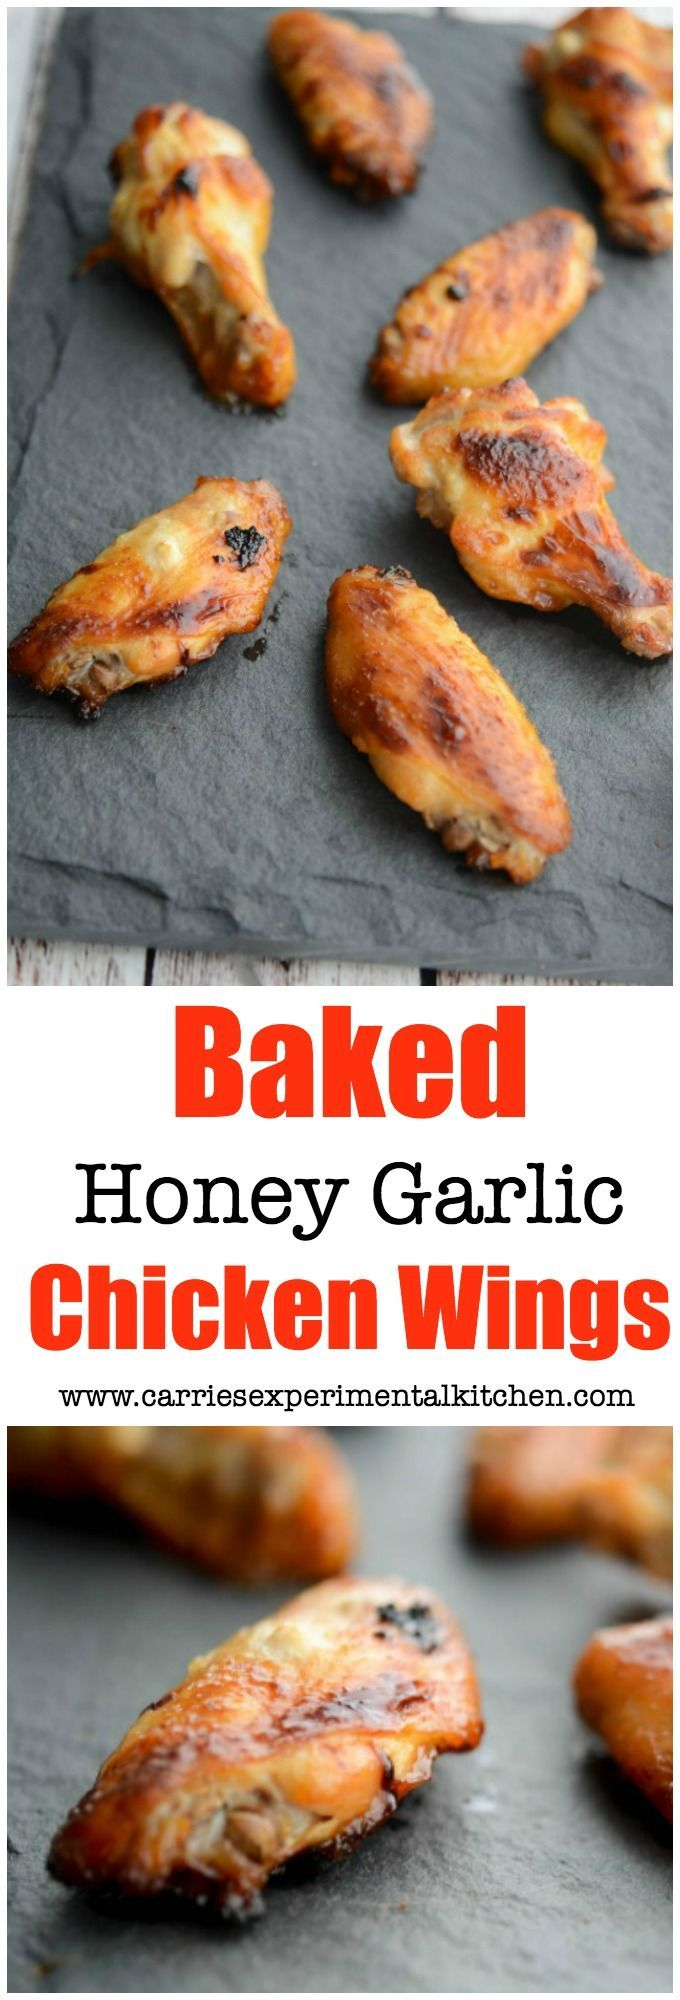 At only 53 calories each, these Baked Honey Garlic Chicken Wings are a healthier option for game day snacking.